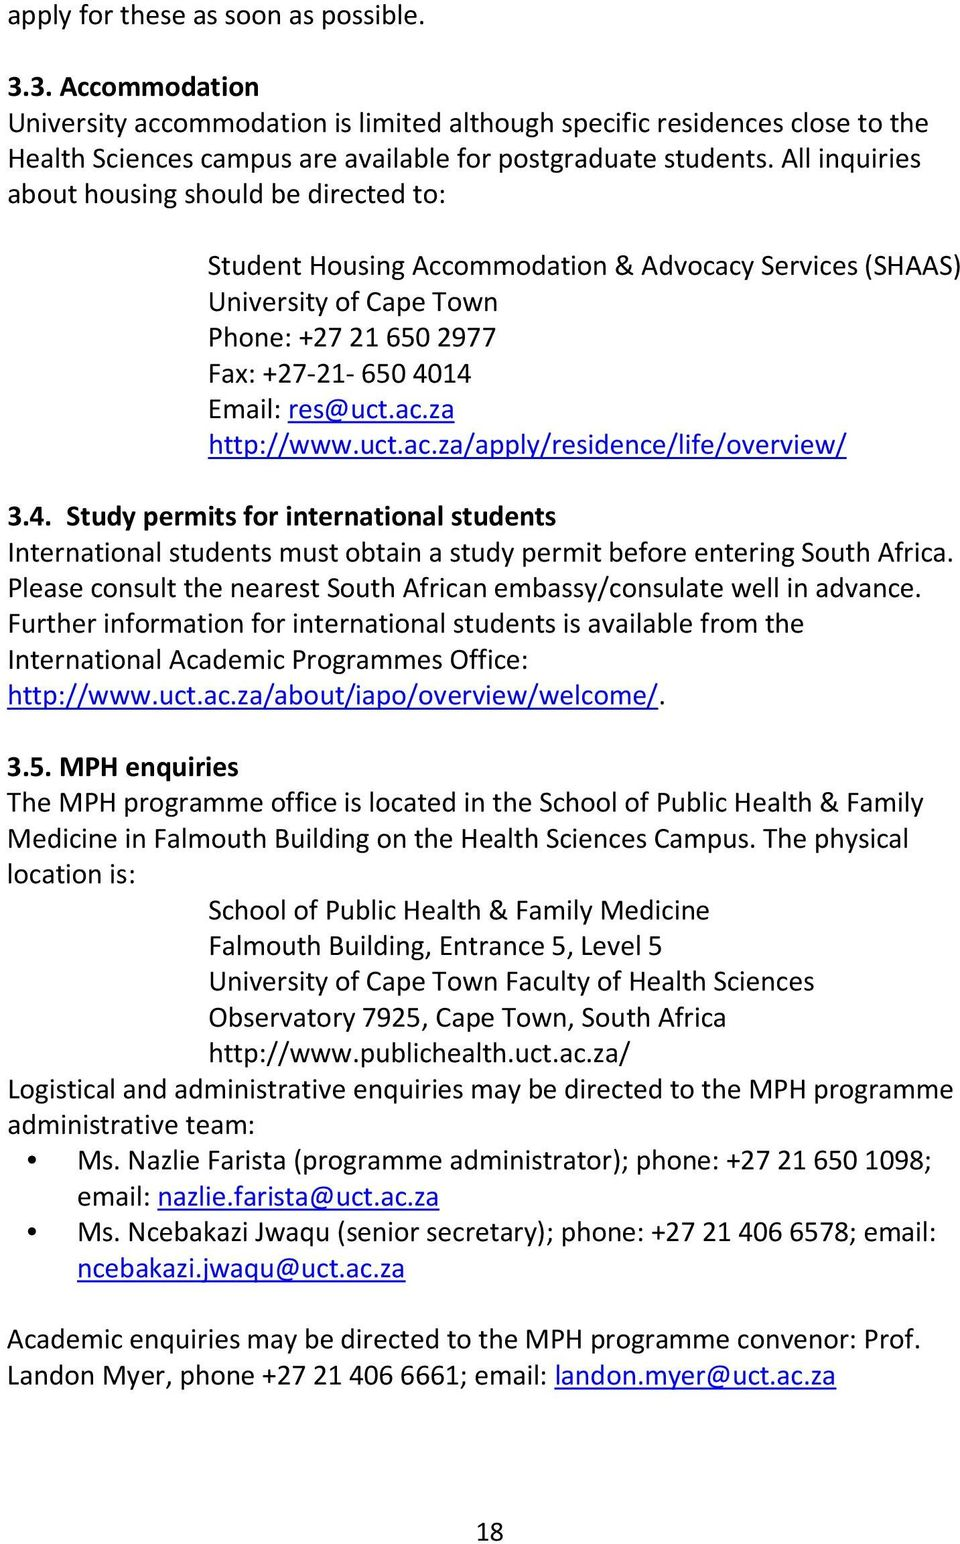 uct mph dissertation guidelines